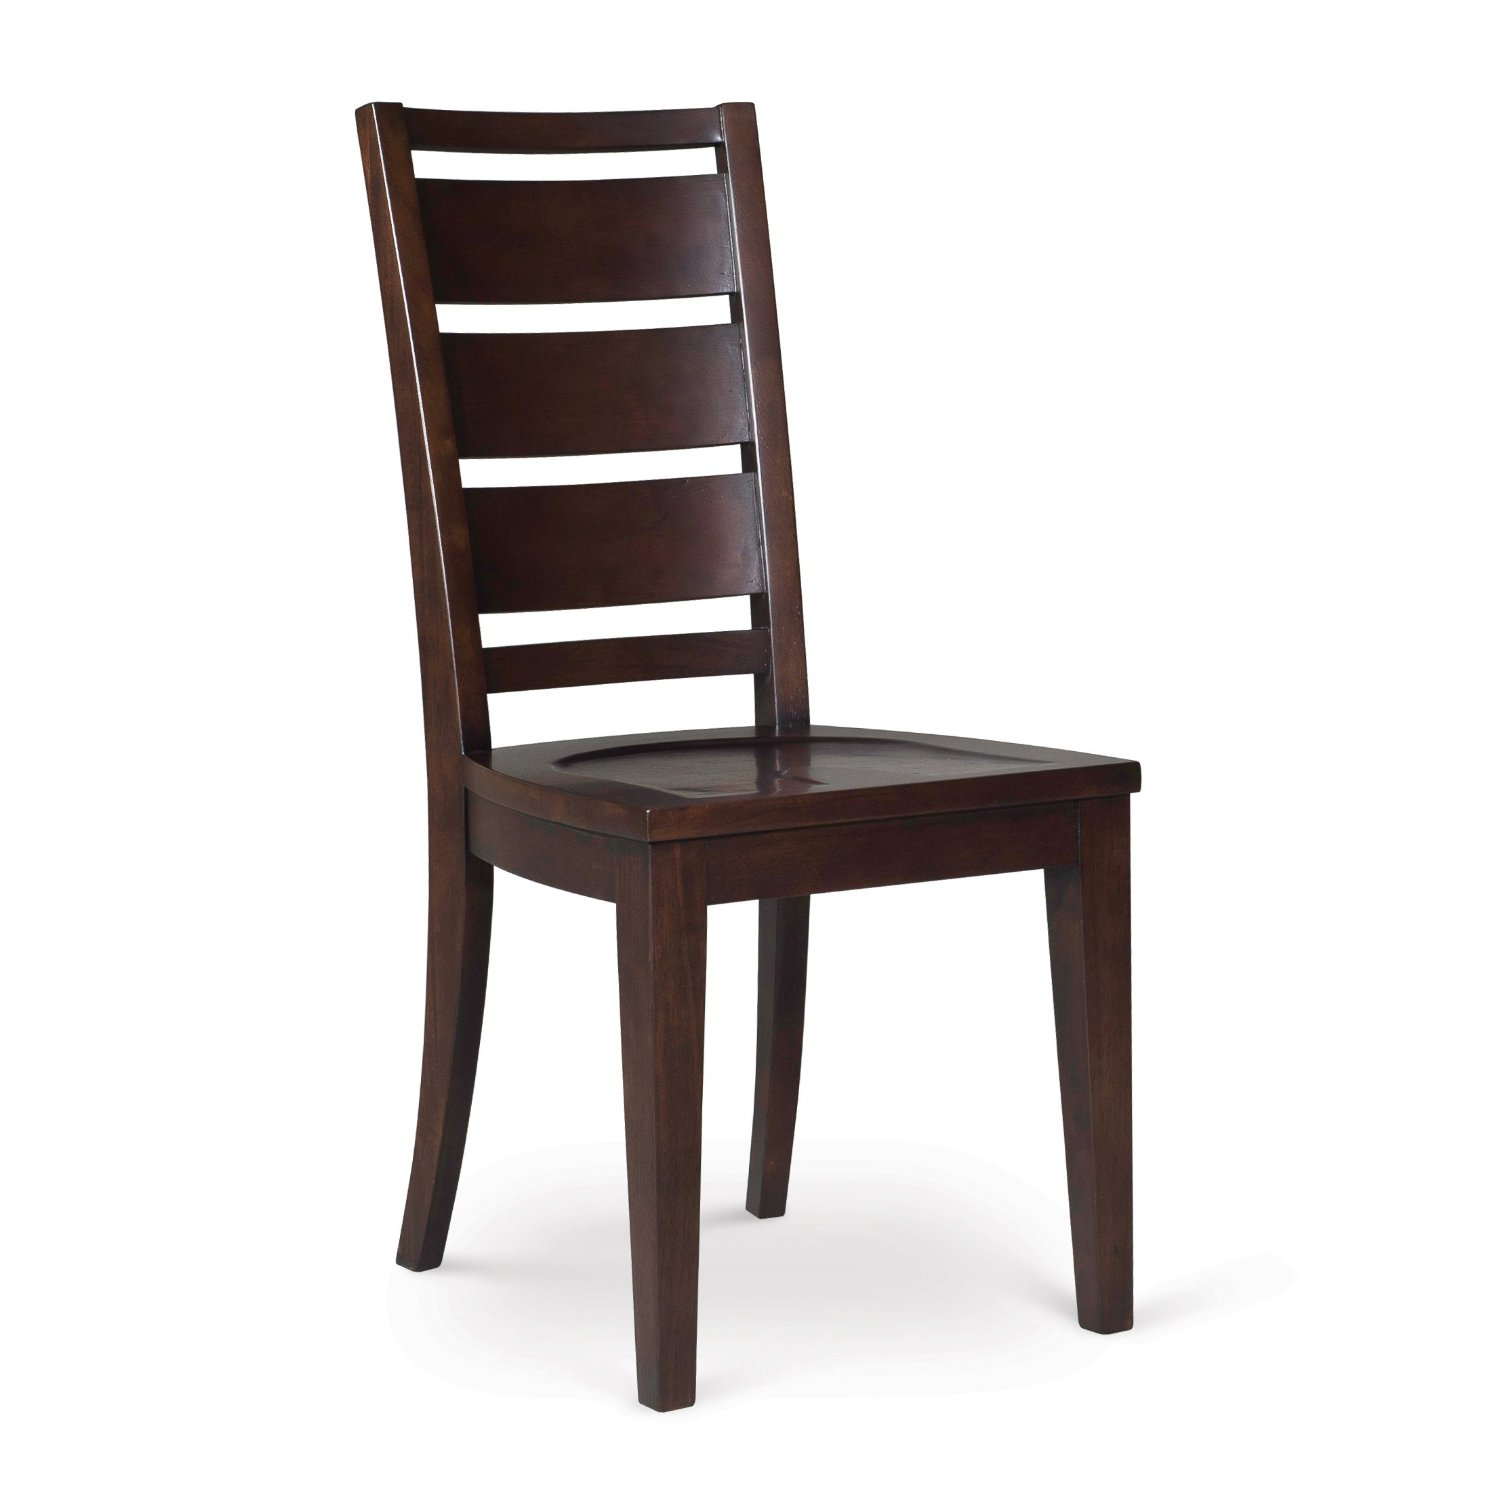 picture of a chair